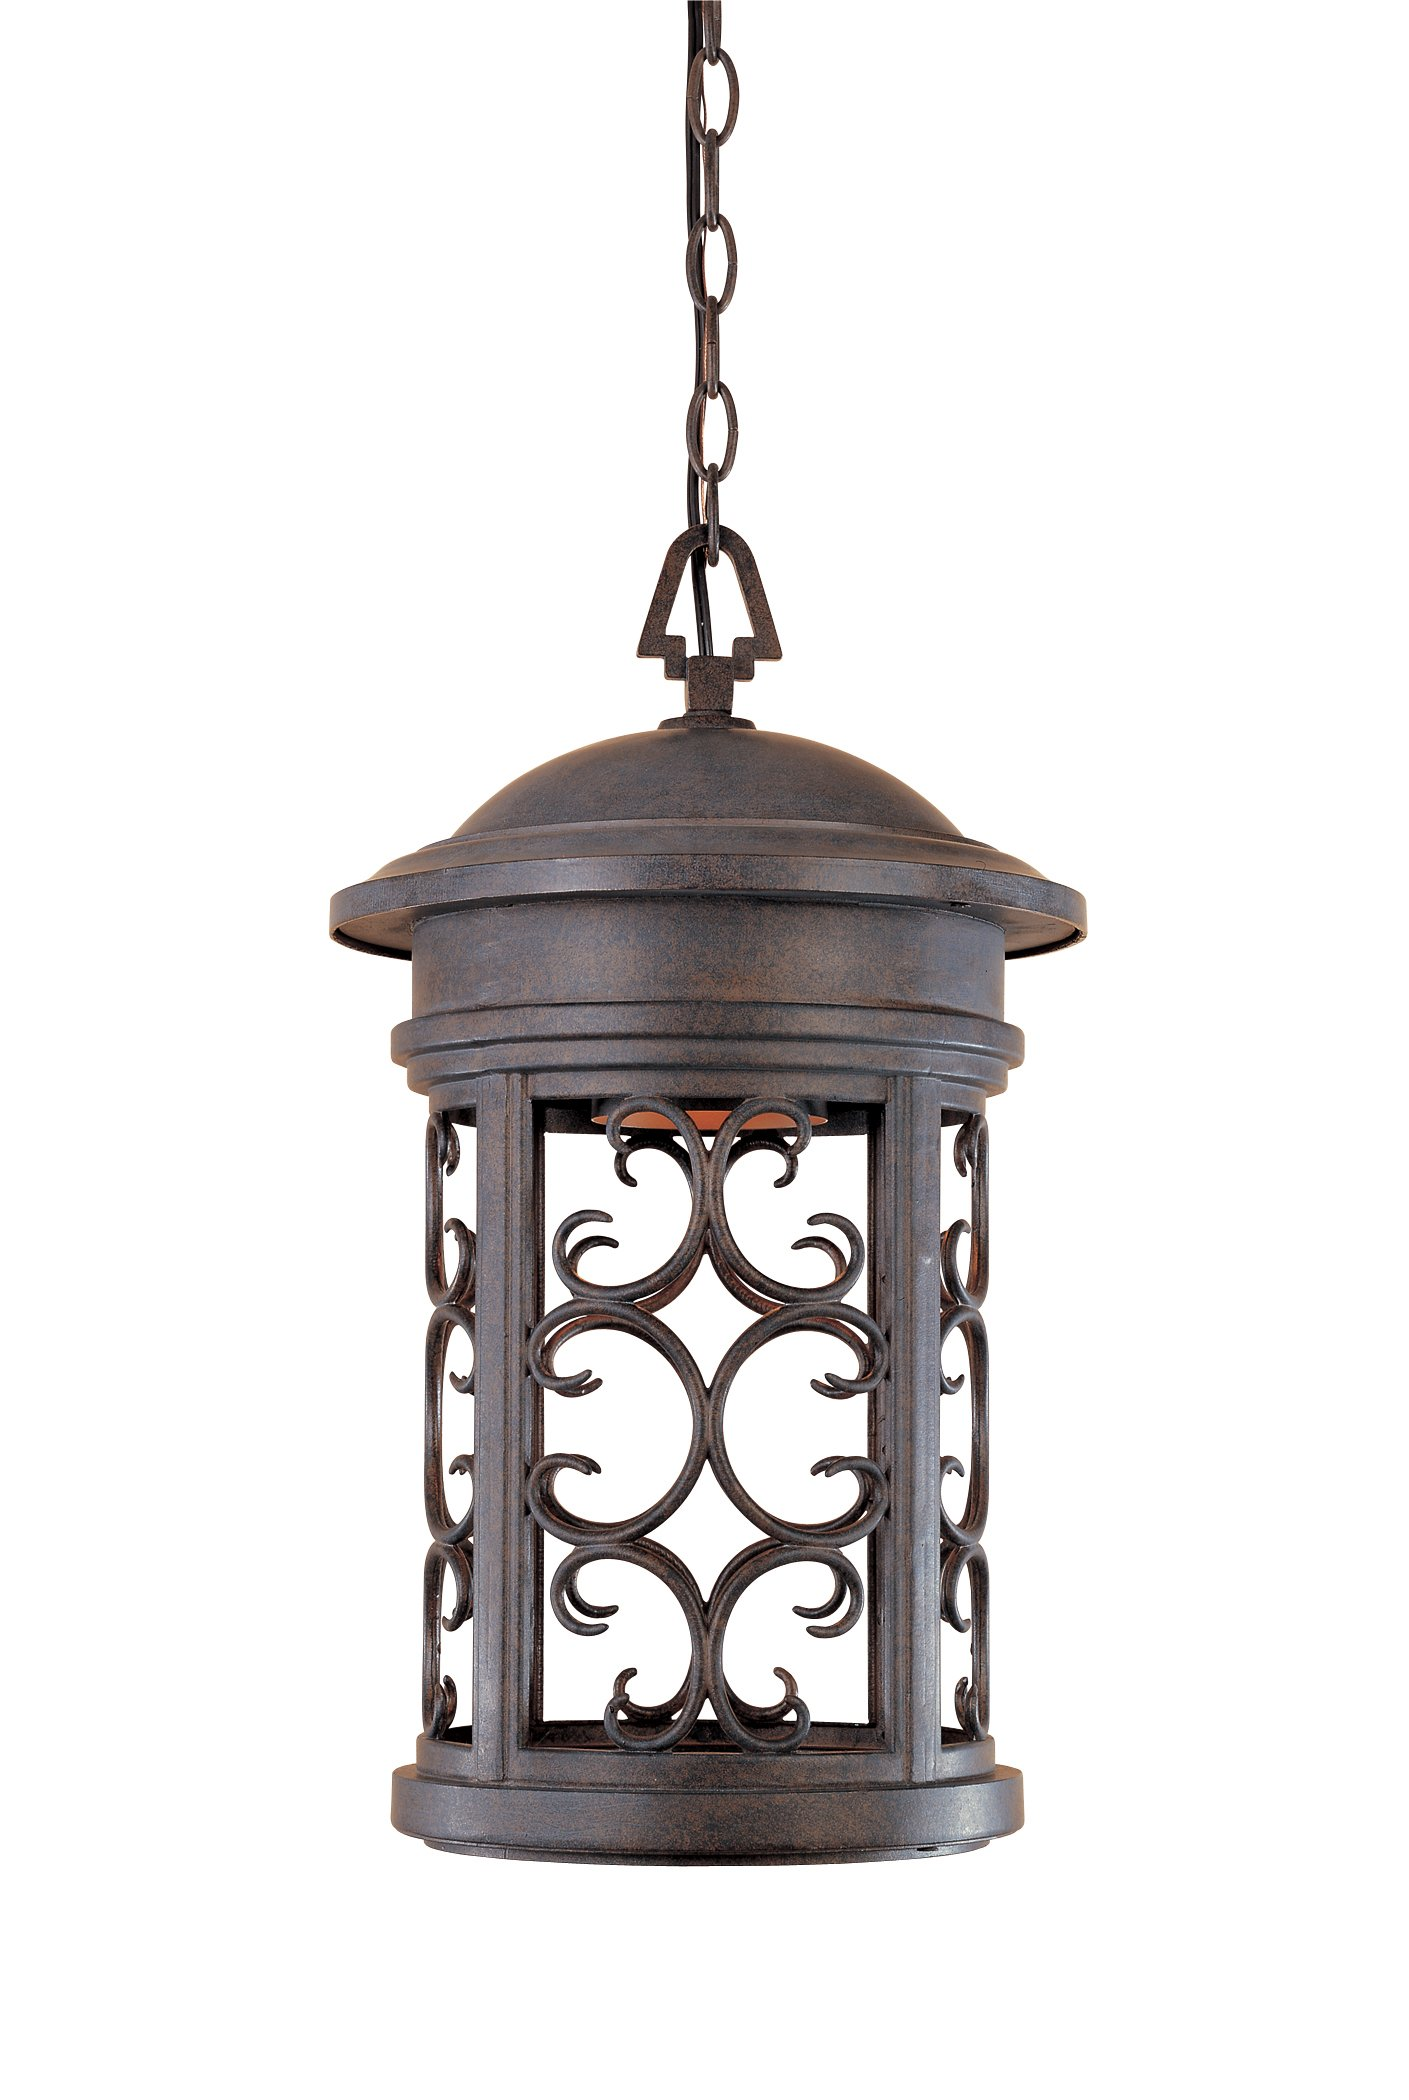 Designers Fountain 31134-MP Ellington-DS Hanging Lanterns, Mediterranean Patina by Designers Fountain